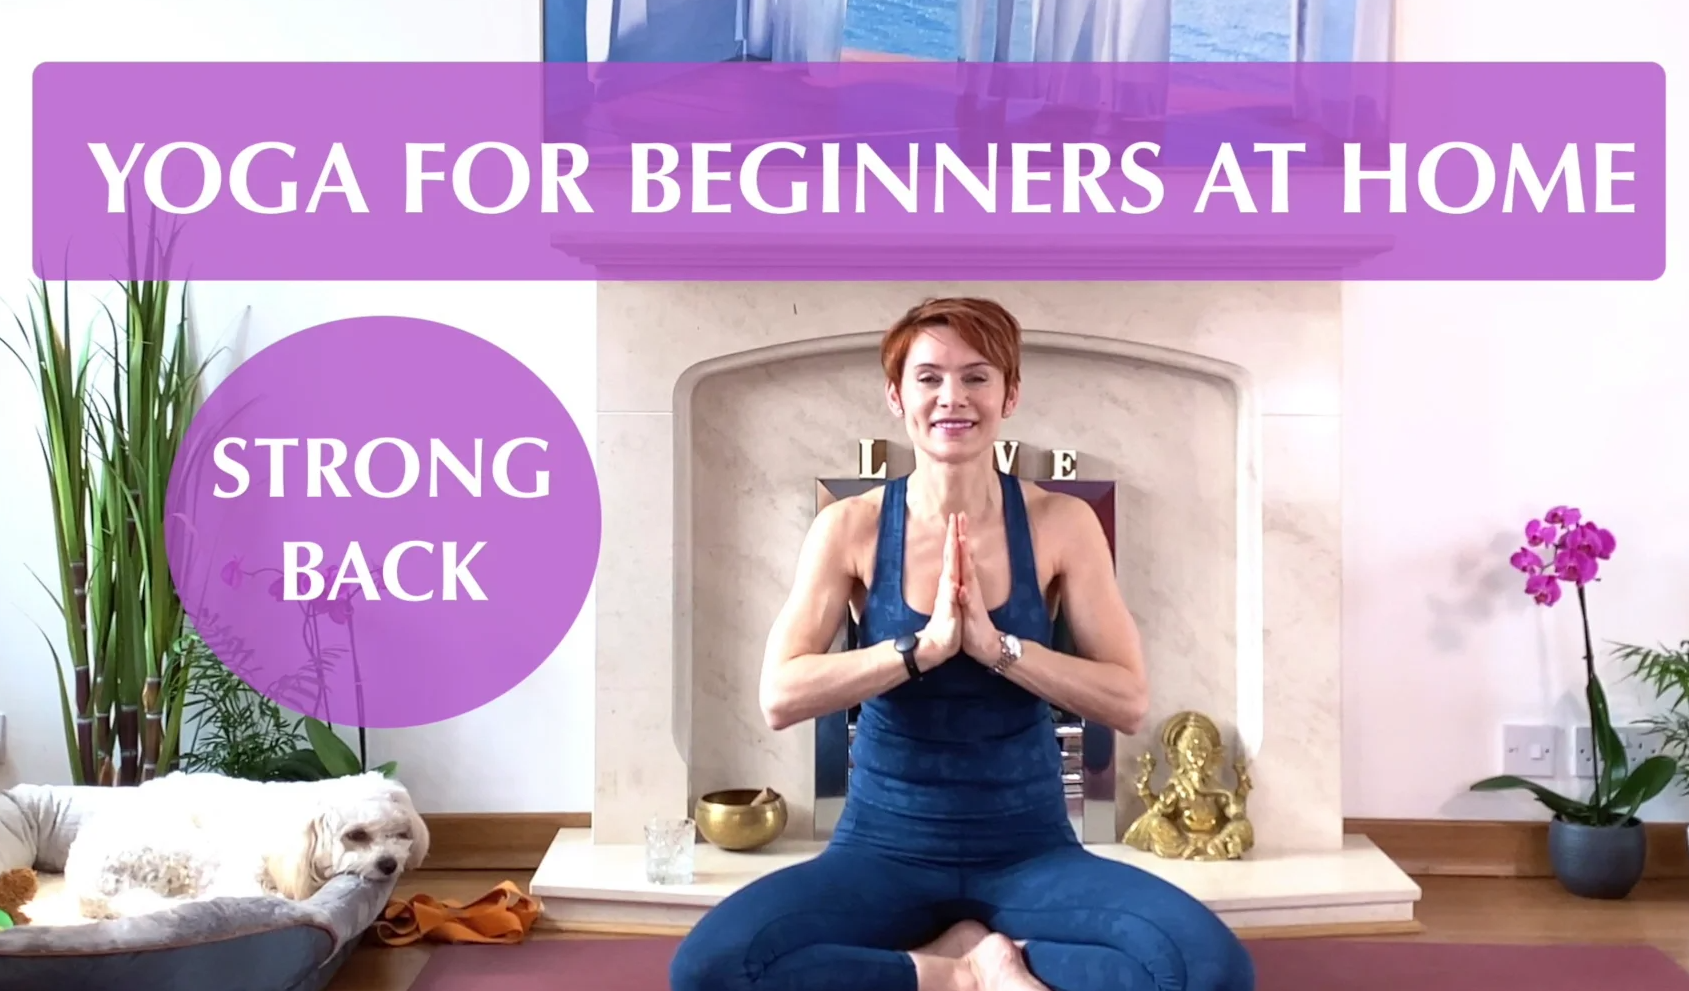 Olga Oakenfold - Yoga For Beginners at Home - Strong Back